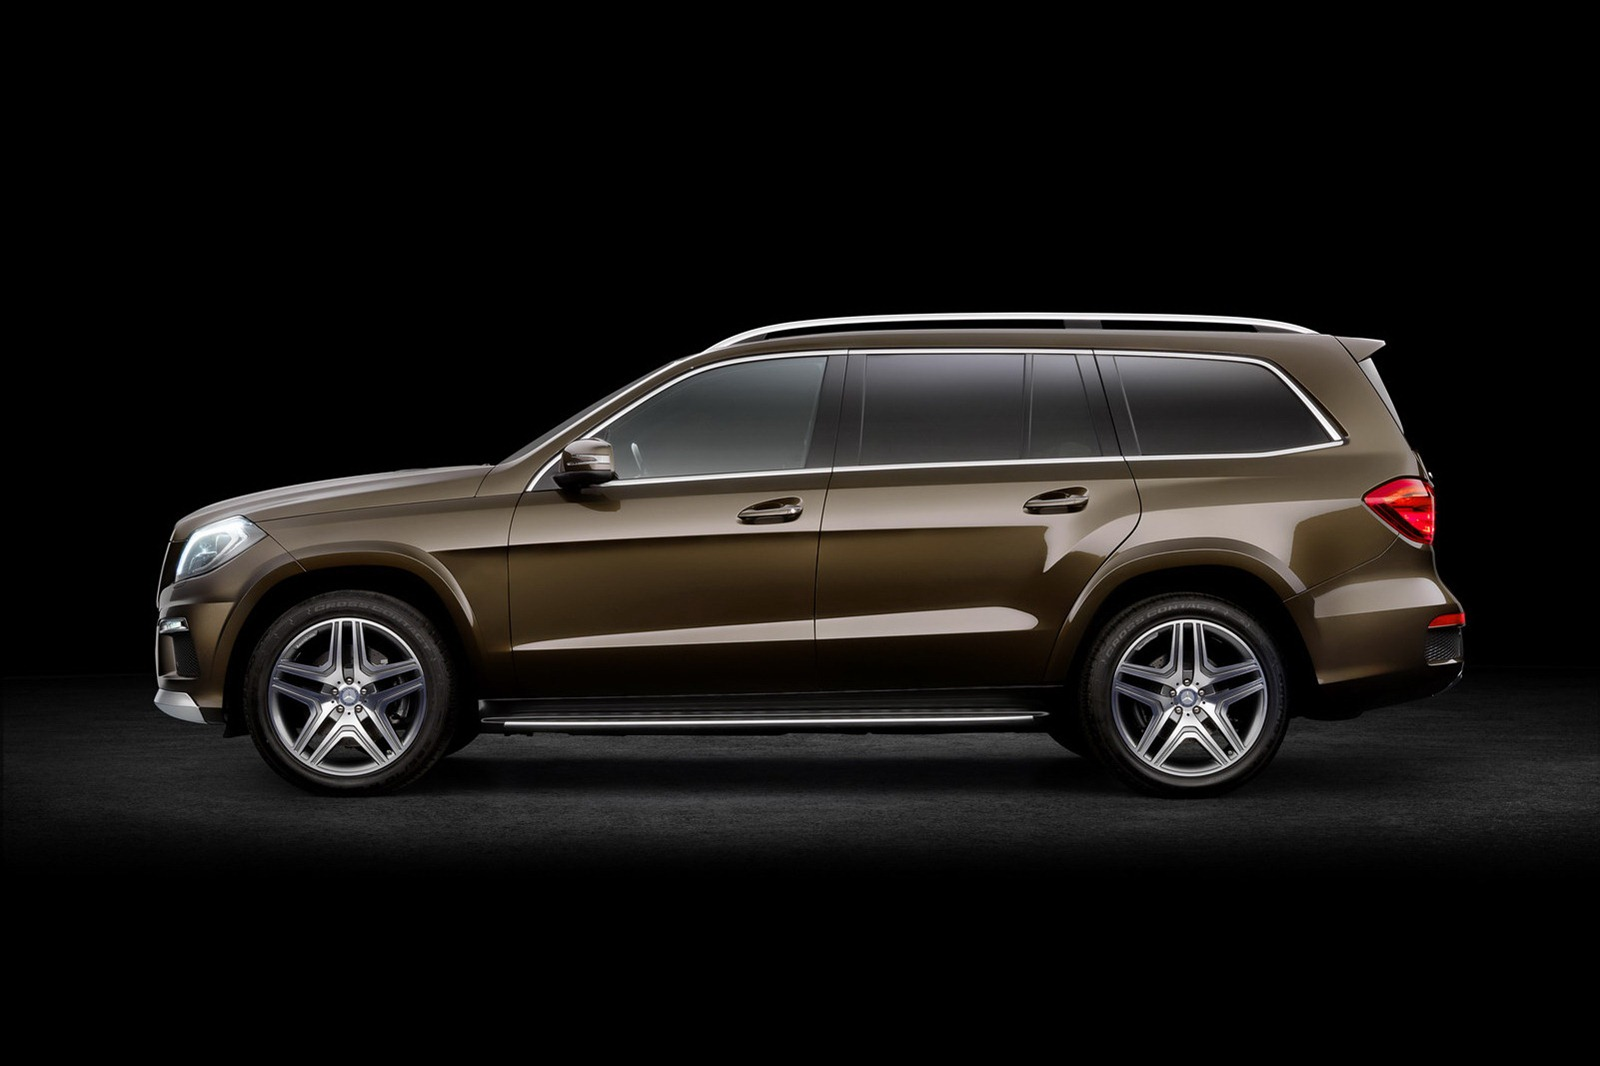 2013 mercedes benz gl class luxury suv unveiled for 2013 mercedes benz gl